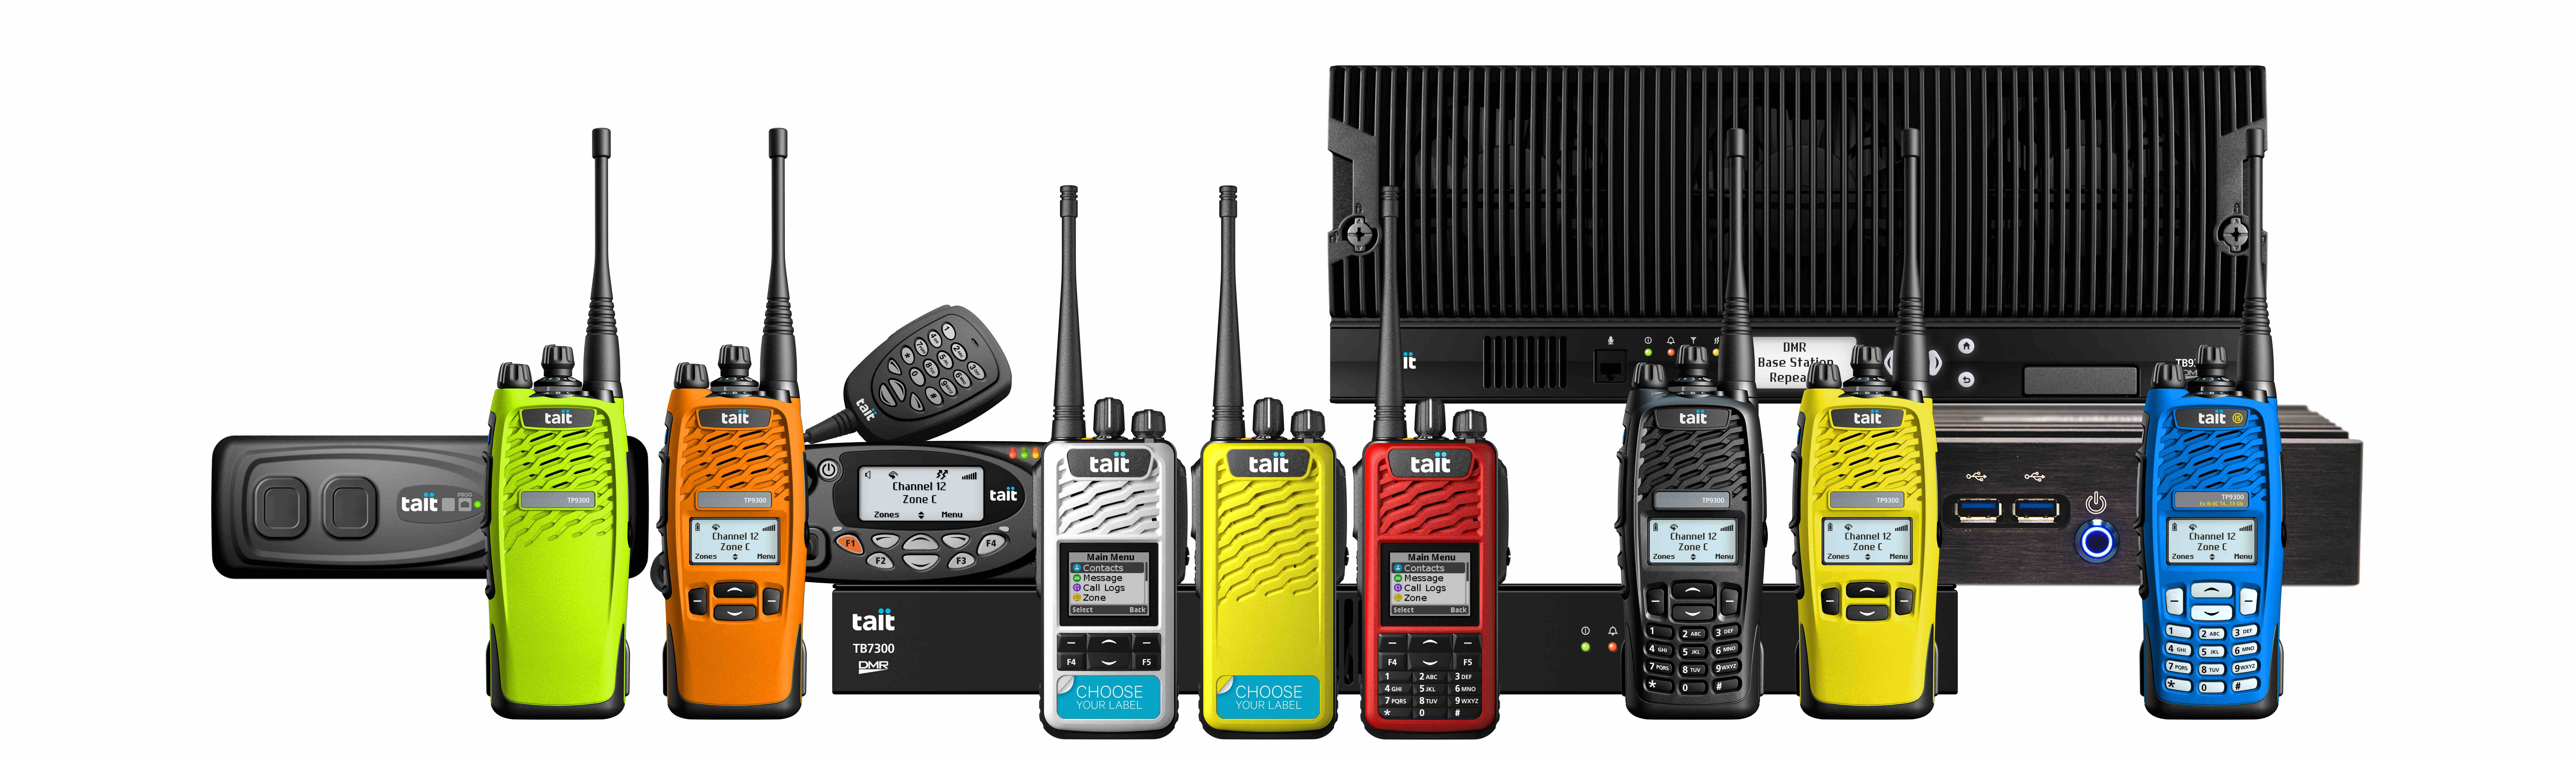 Tait radio family DMR digital portable, mobile and base station radios